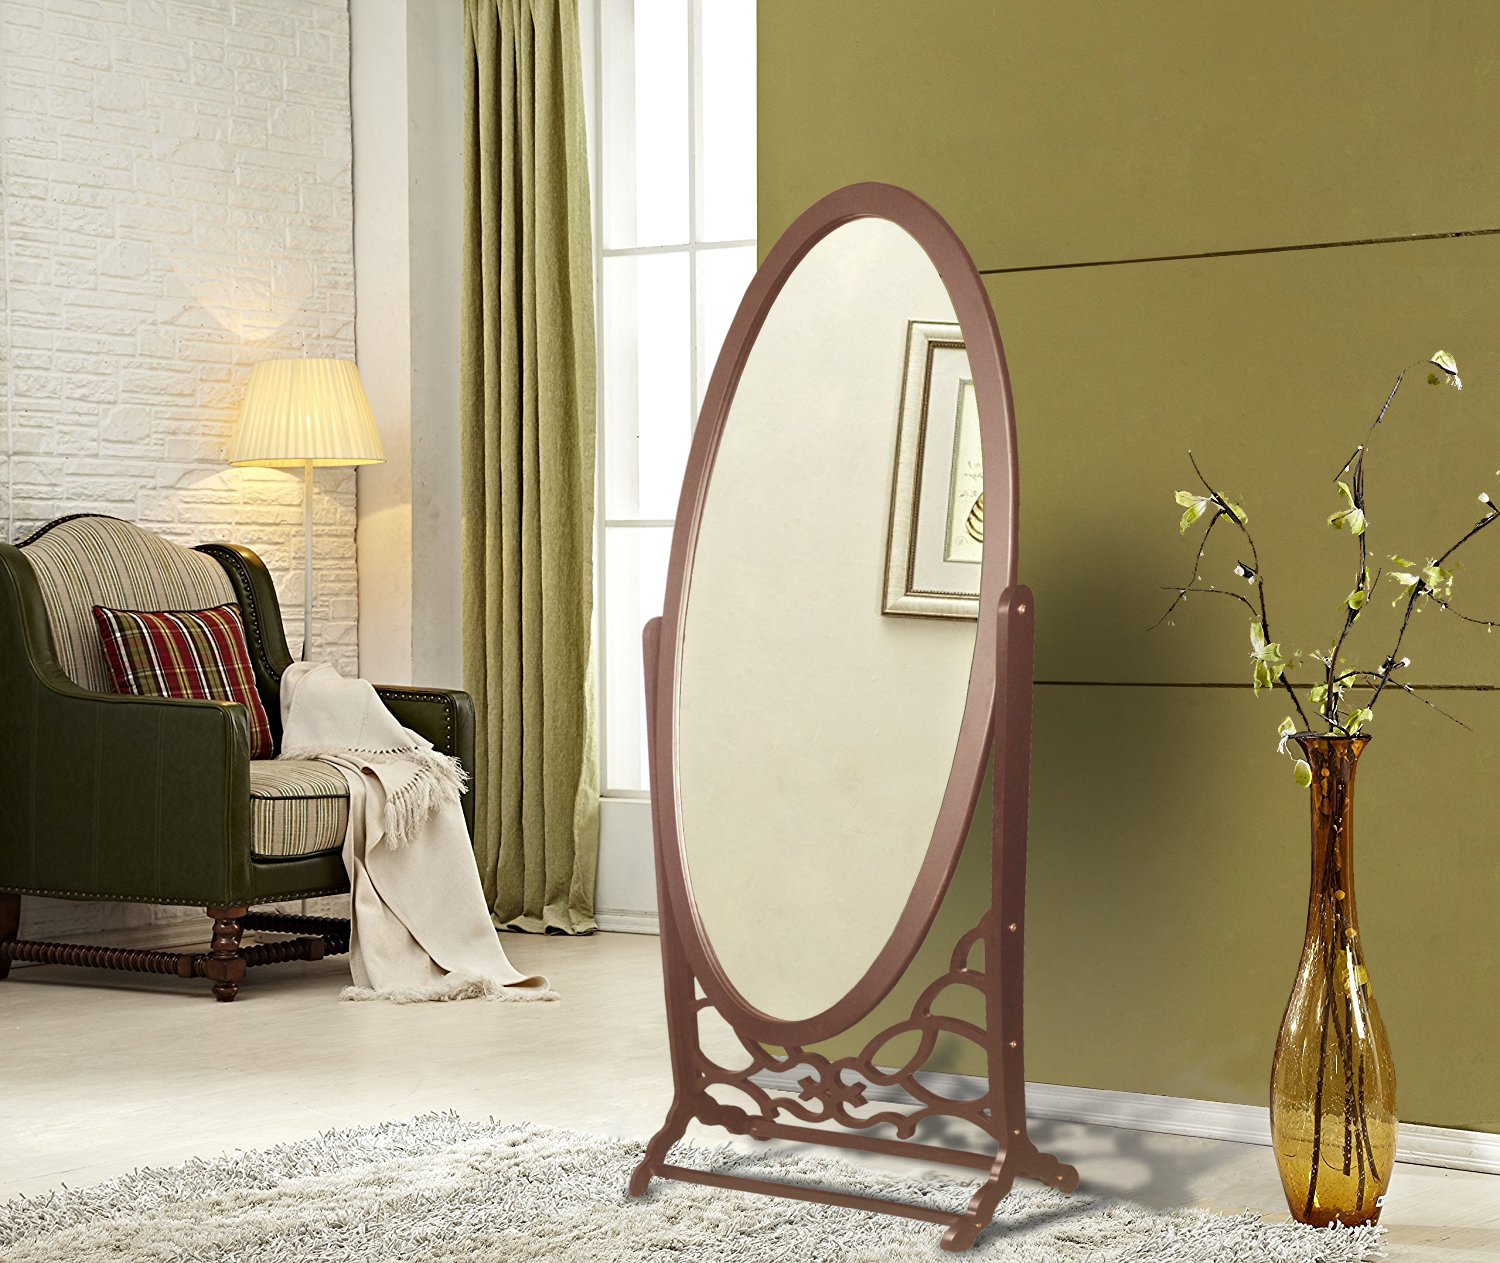 Chic Home York Mirror Modern Free standing Spindle accent legs Floor Mirror, Espresso by Chic Home